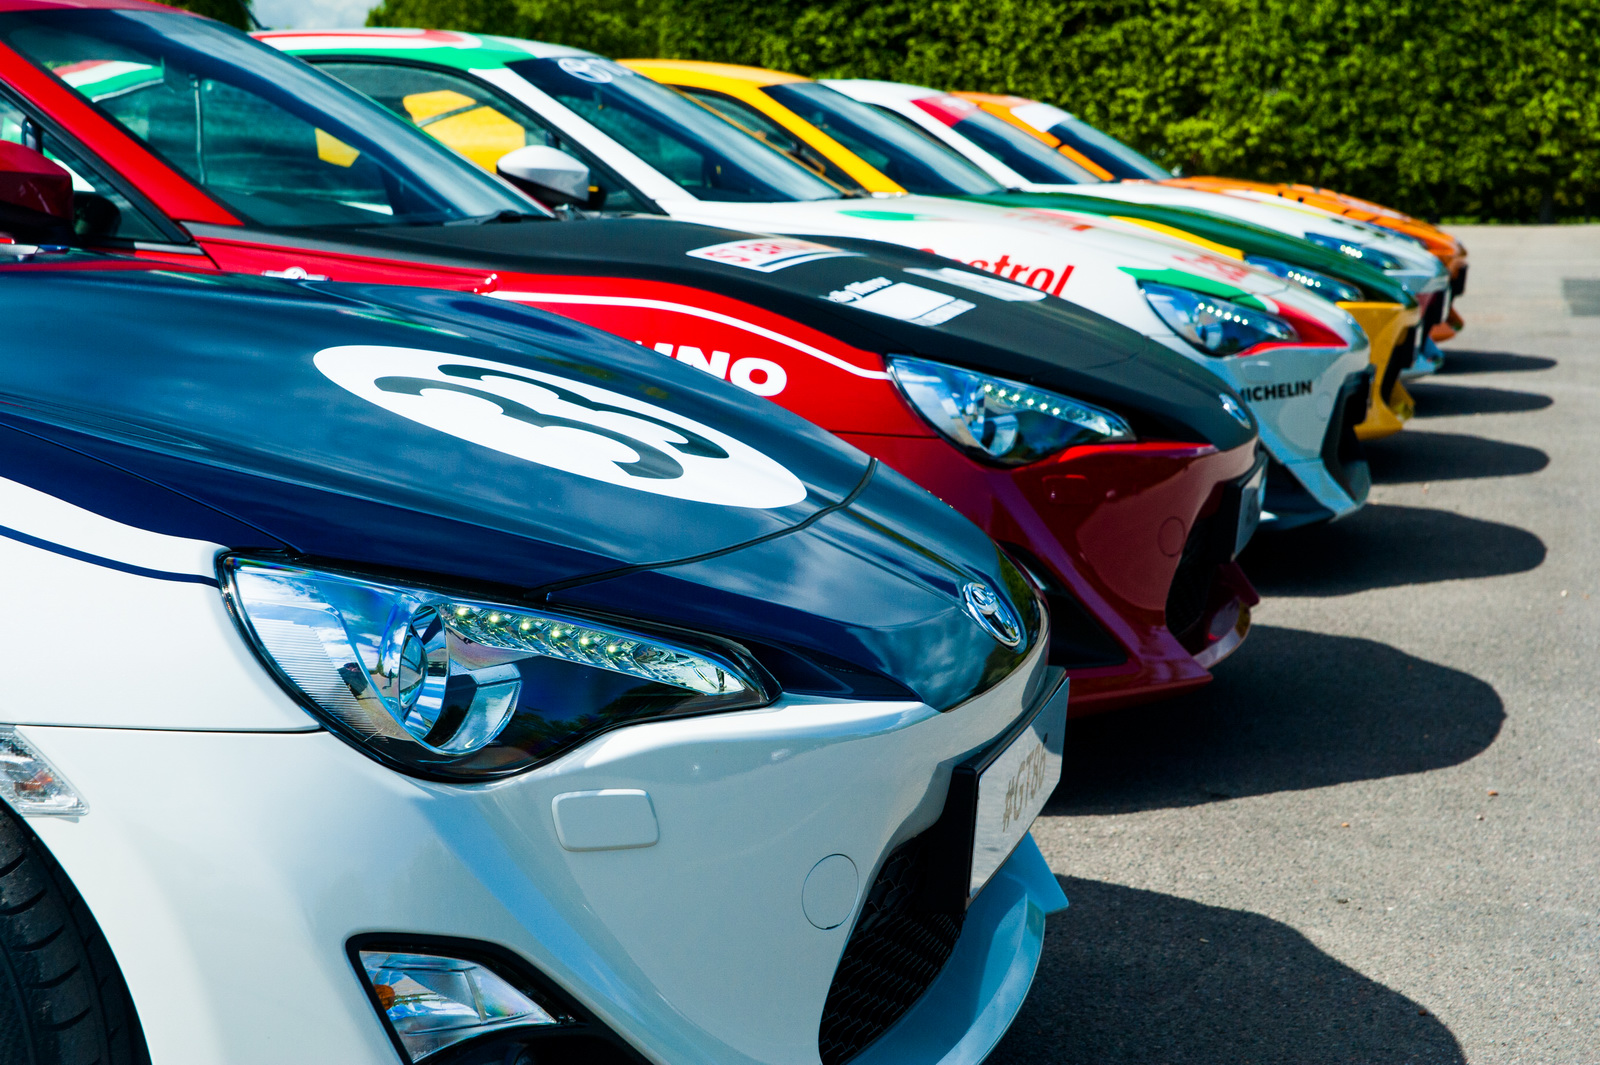 Des Toyota GT86 en robes d'époque - Photo n°4